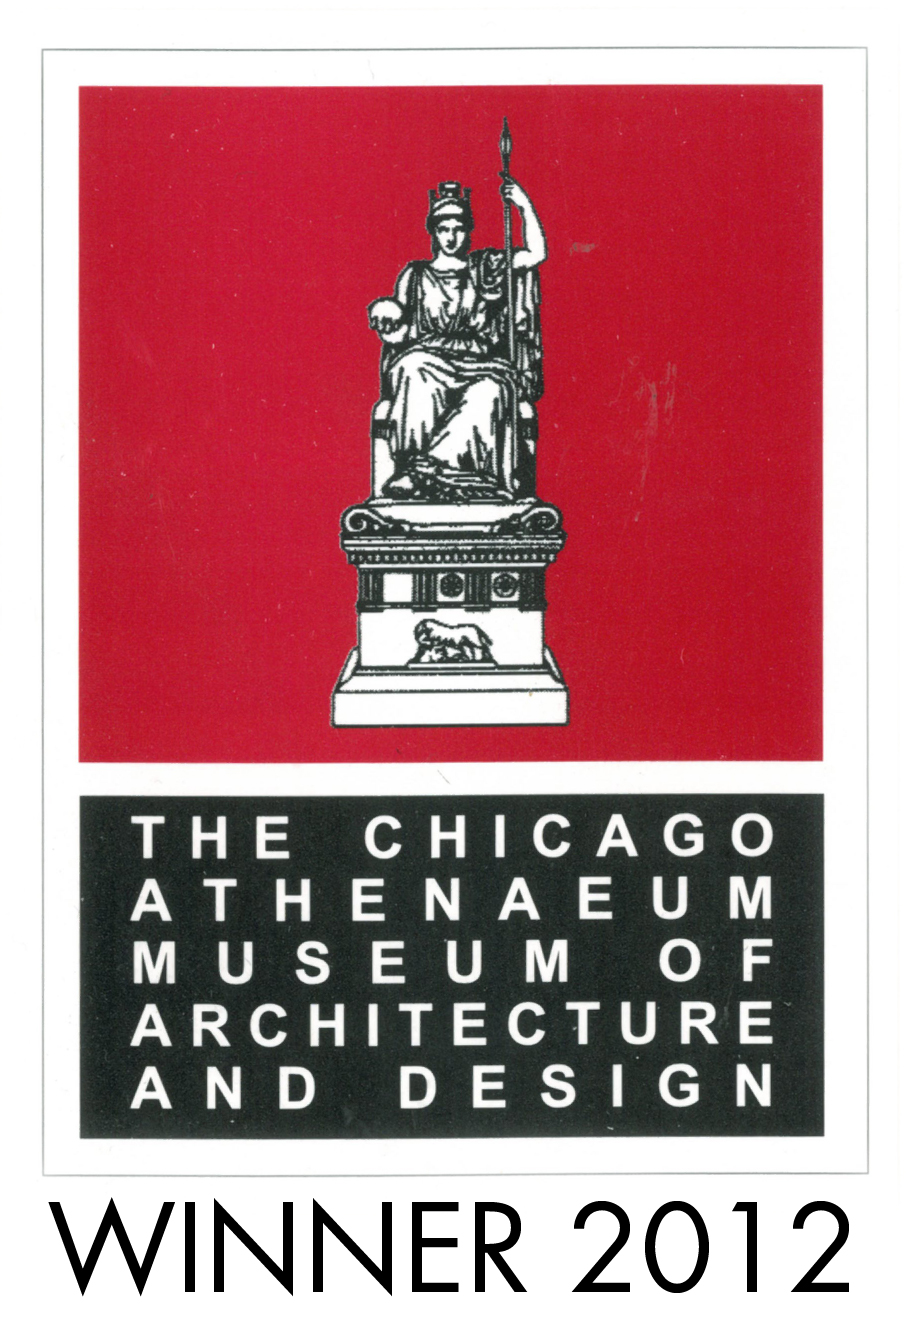 THe Chicago Athenaeum Museam Logowinner.jpg